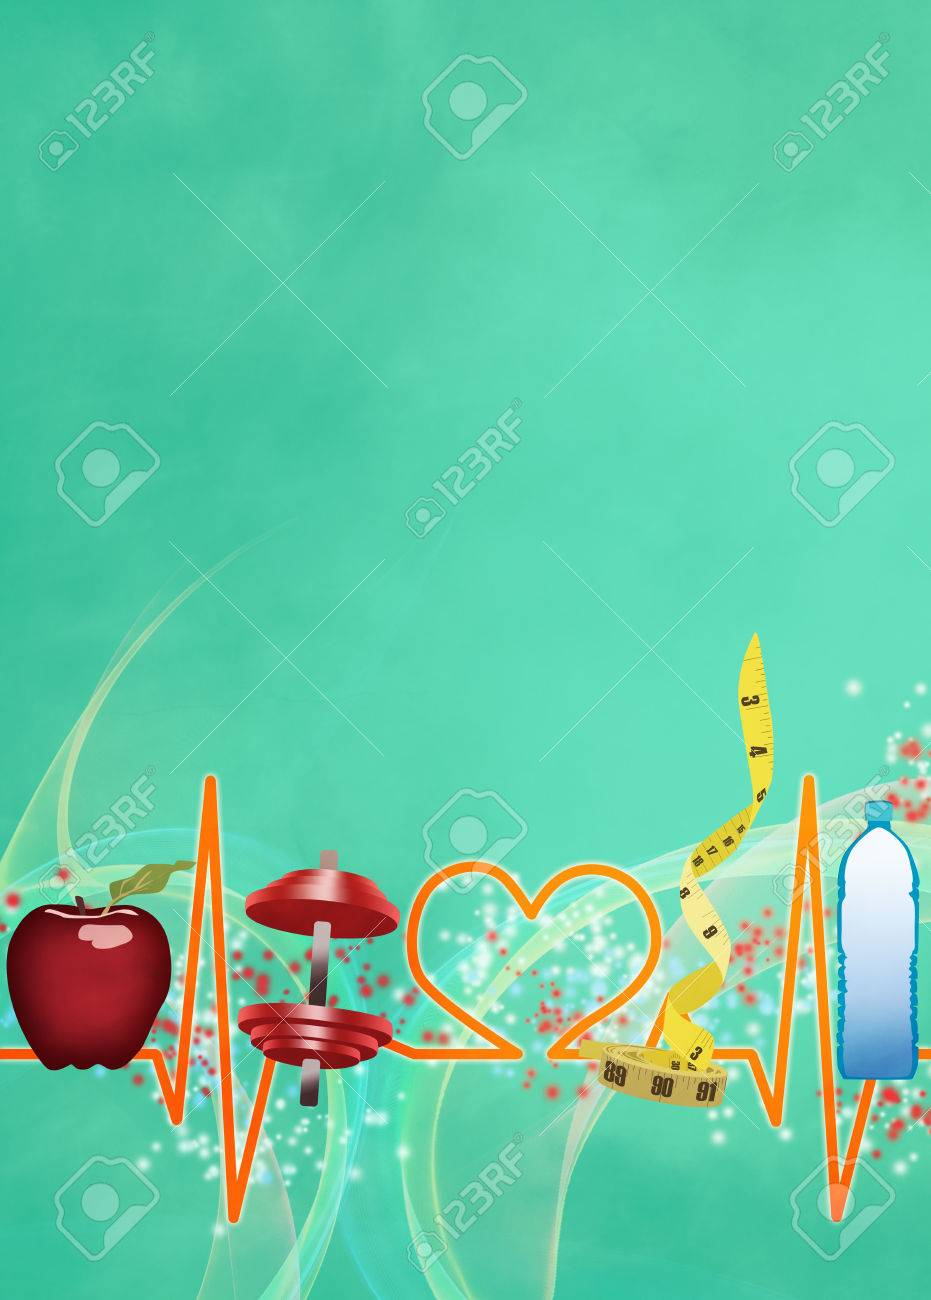 Healthy Living Poster Or Flyer Background With Empty Space Stock